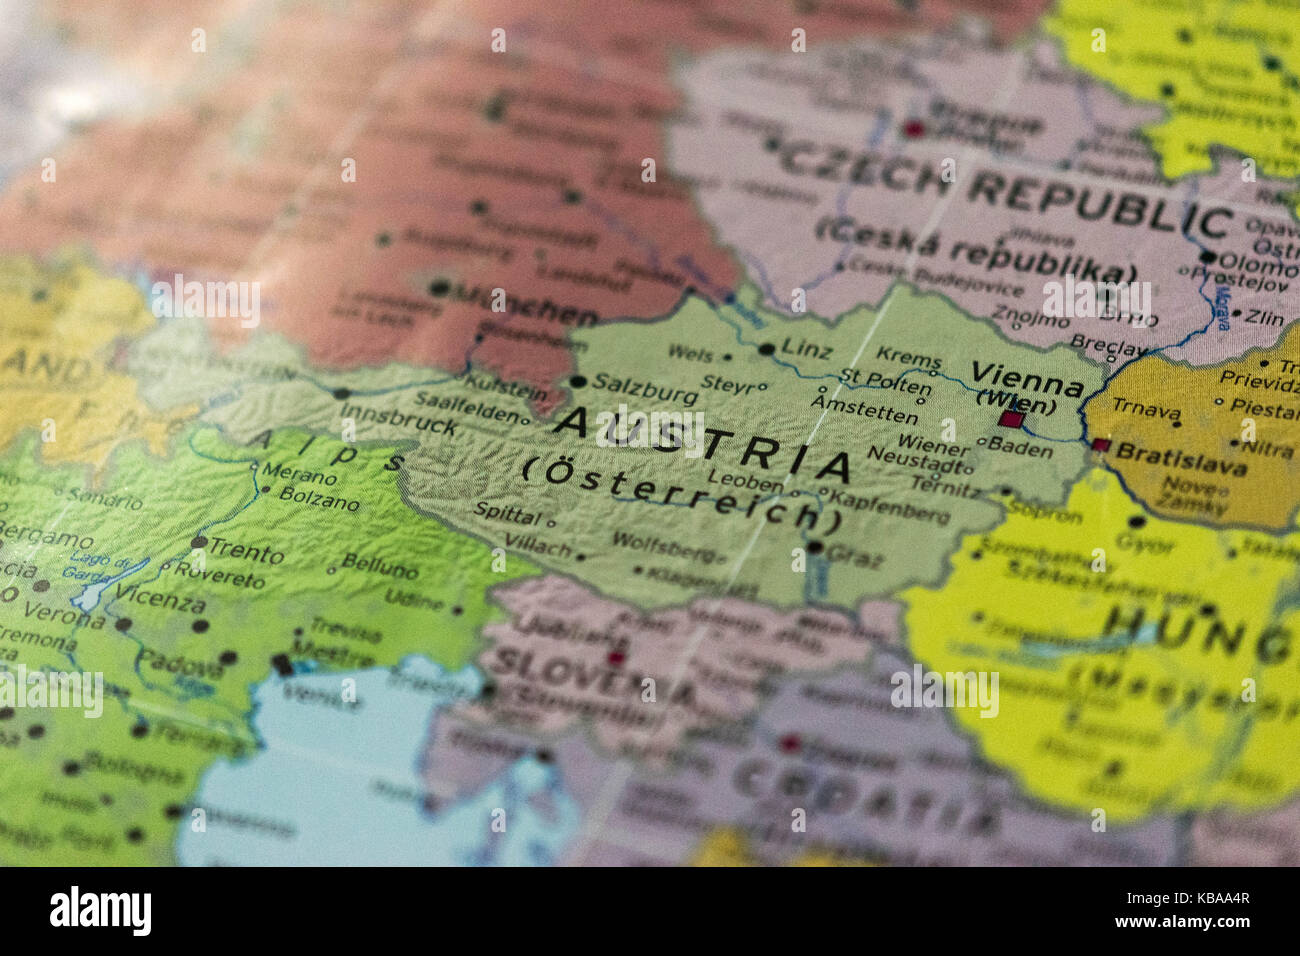 Europe Capitals Map Stockfotos & Europe Capitals Map Bilder - Alamy